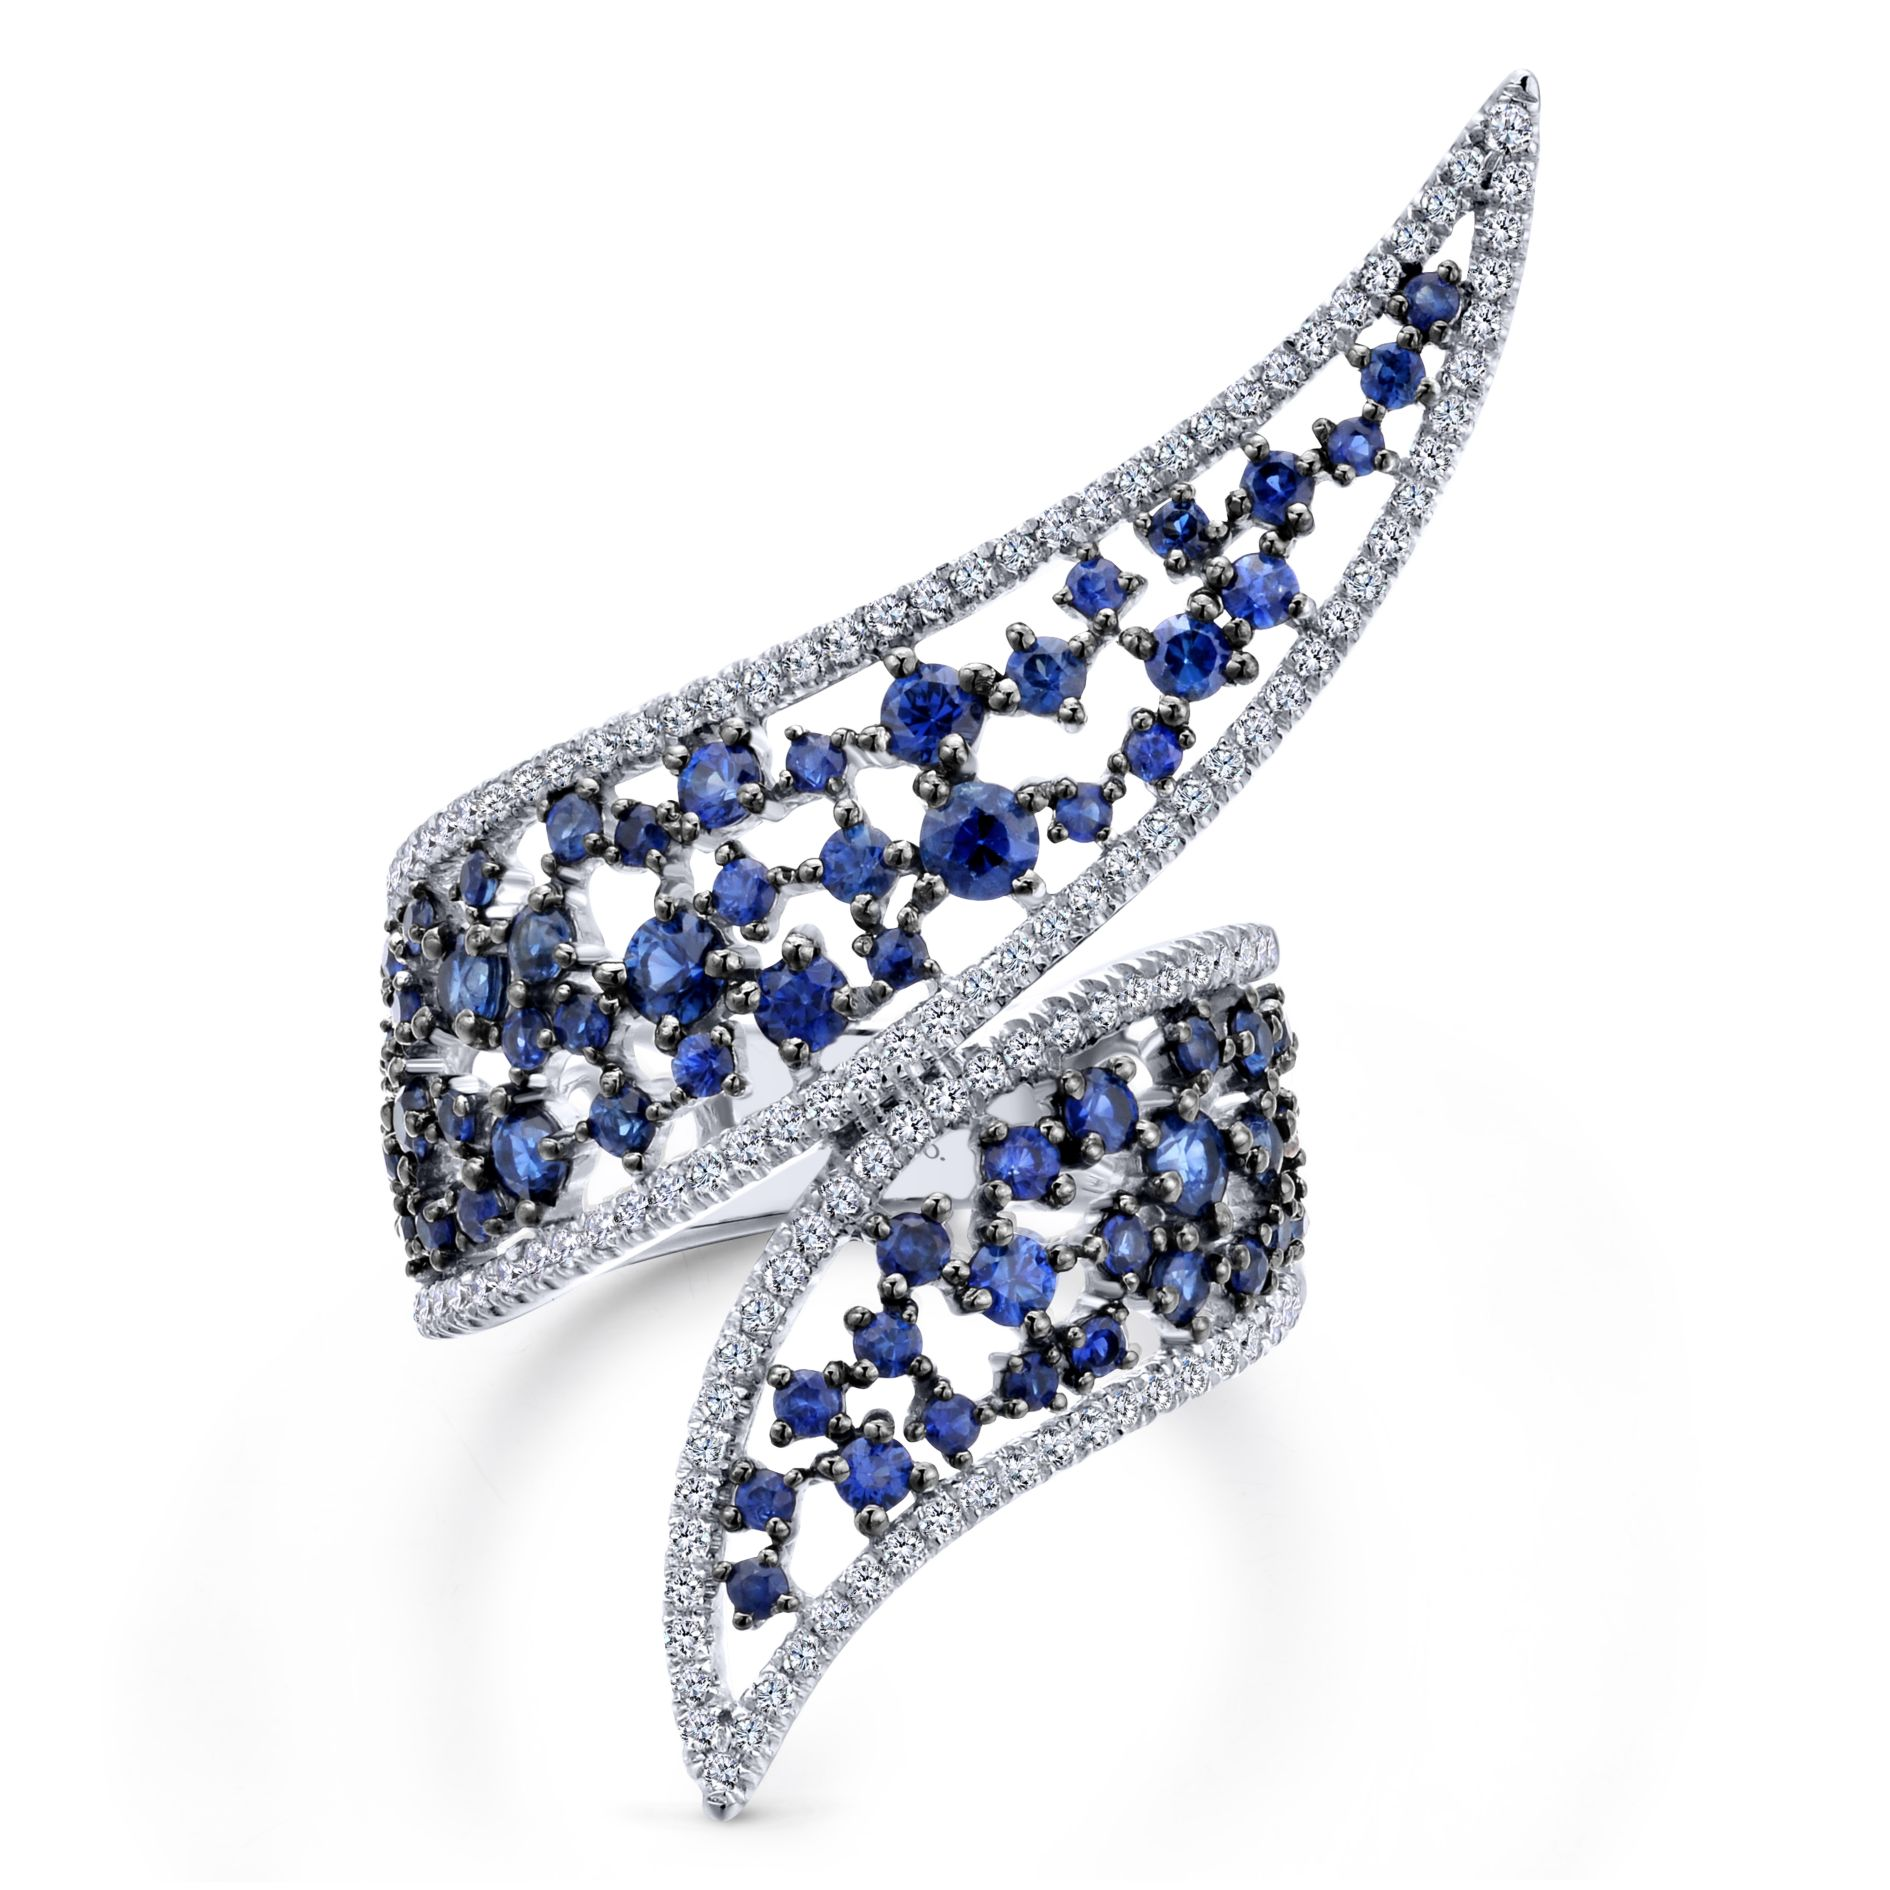 Rings - DIAMOND AND SAPPHIRE LADIES RING